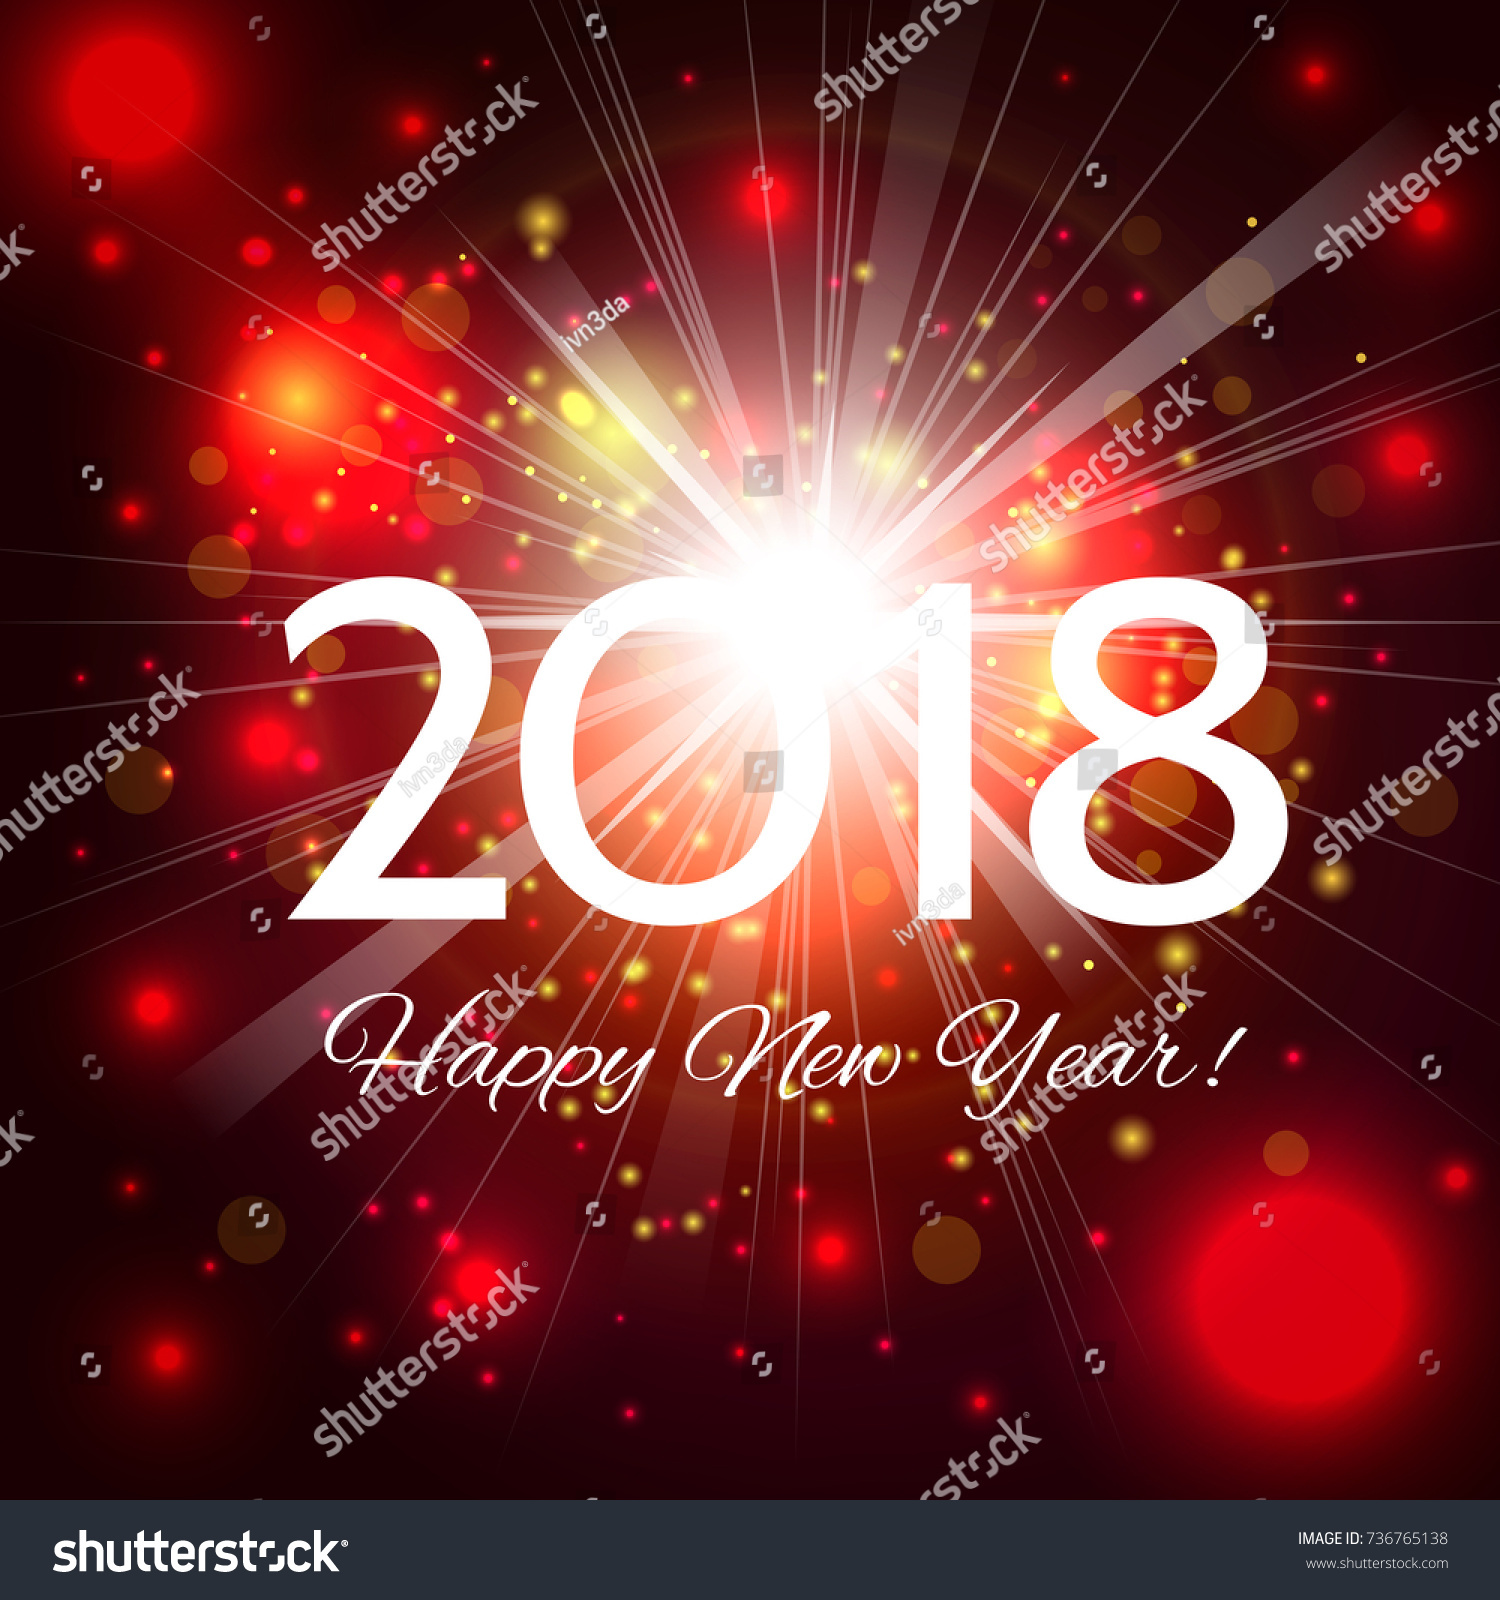 happy new year 2018 beautiful red holiday fireworks background with a bright flash of light and